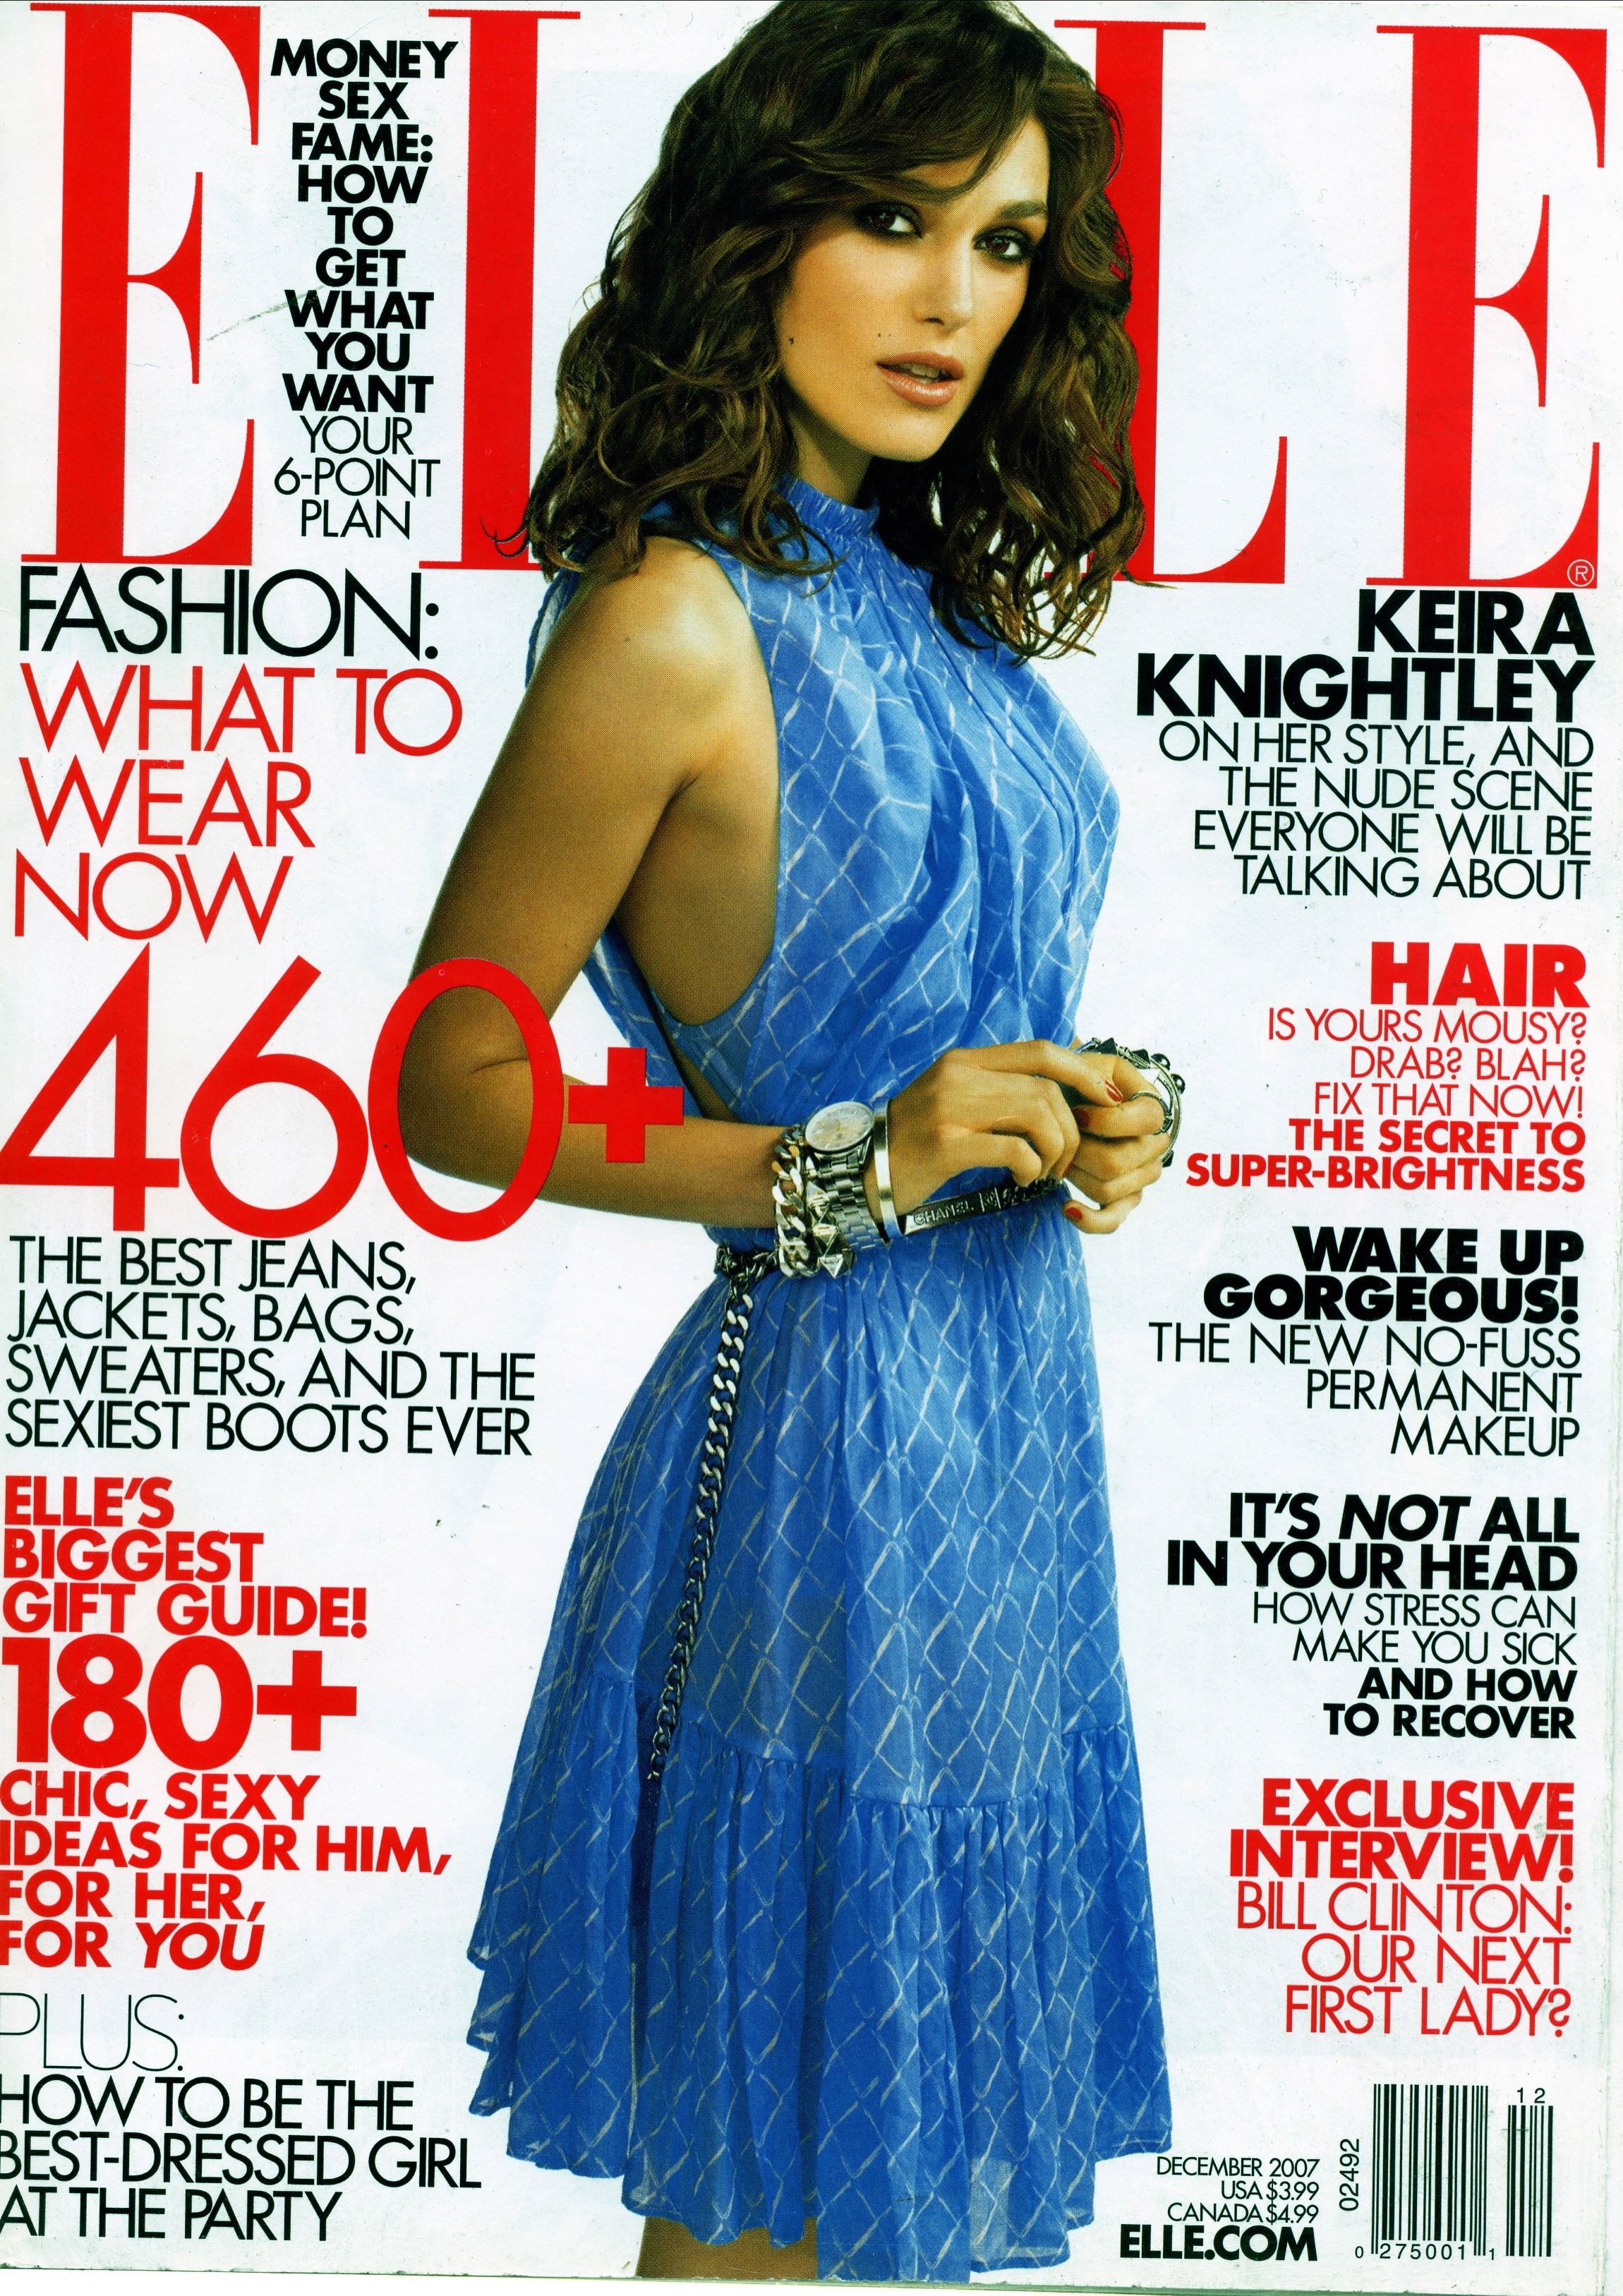 elle mag dec 07 cover.jpg